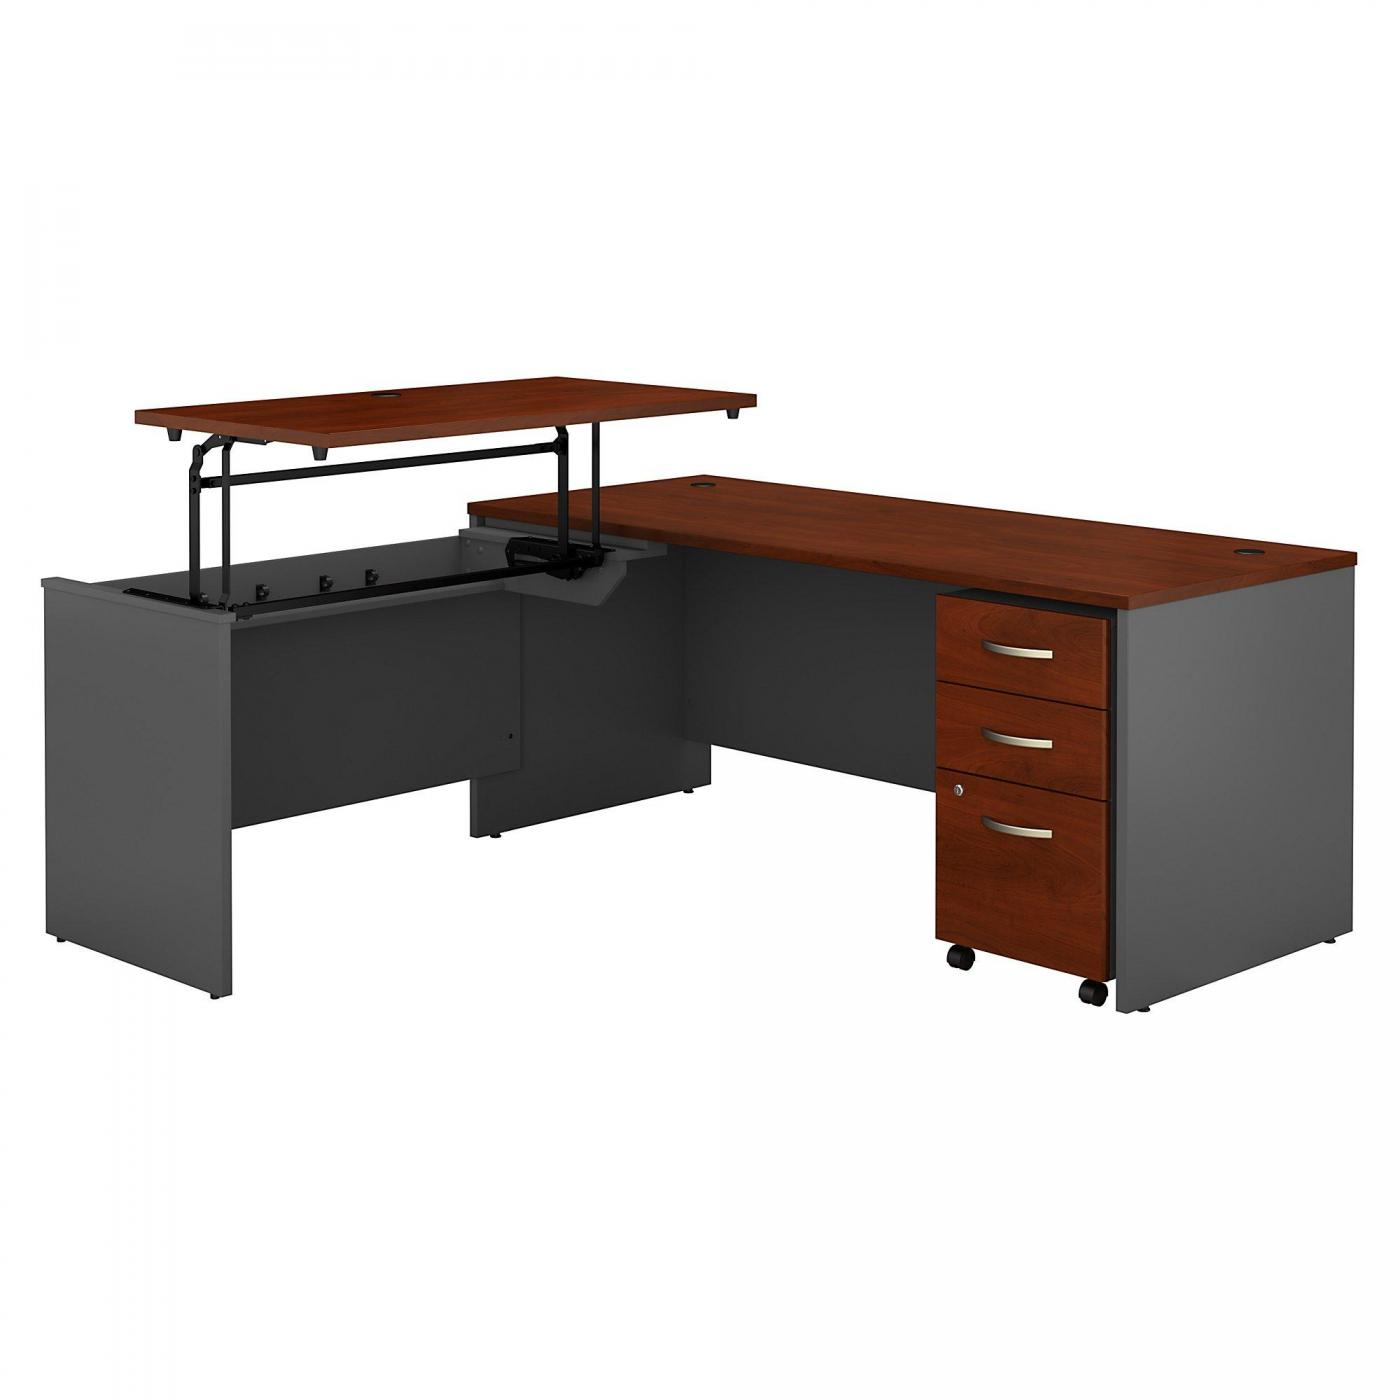 <font color=#c60><b>BUSH BUSINESS FURNITURE SERIES C 72W X 30D 3 POSITION SIT TO STAND L SHAPED DESK WITH MOBILE FILE CABINET. FREE SHIPPING. VIDEO:</font></b></font></b>